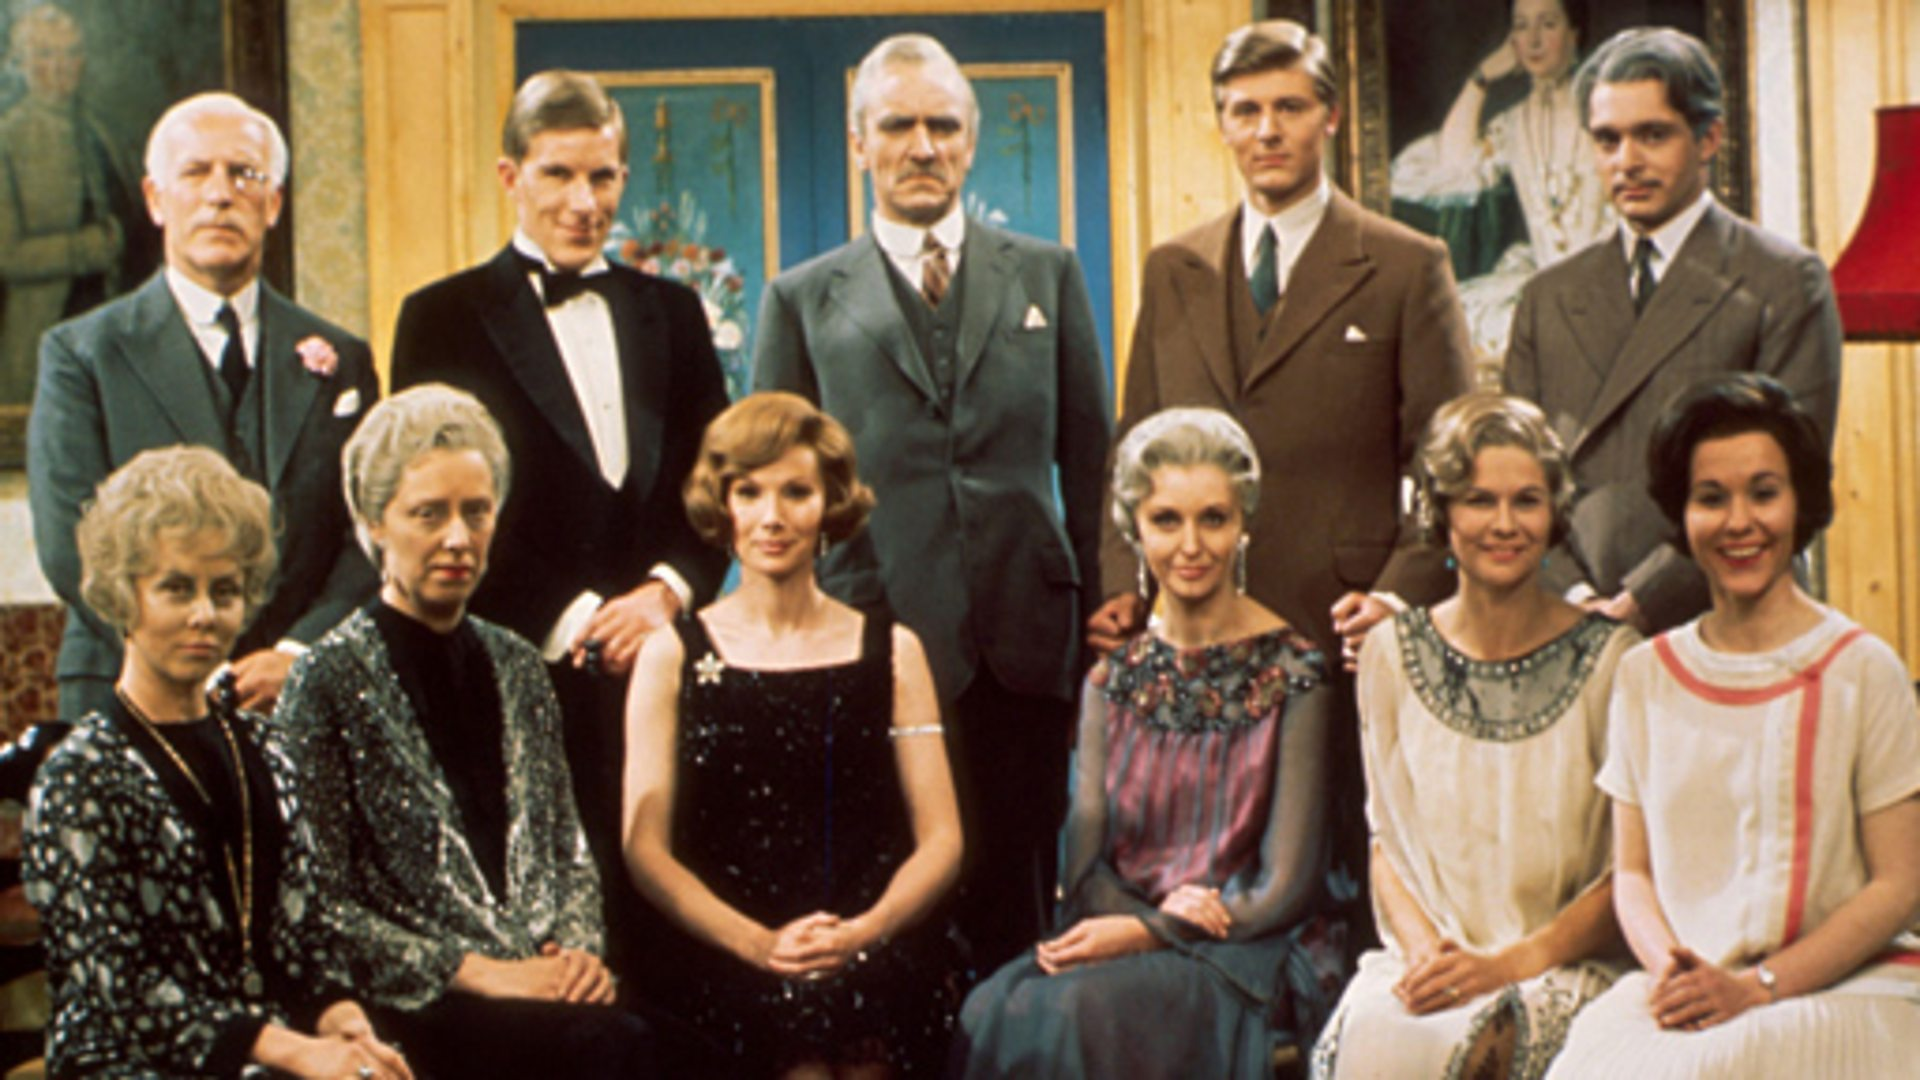 Susan Hampshire, Martin Jarvis, Cyril Luckham, Eric Porter, Nyree Dawn Porter, and Margaret Tyzack in The Forsyte Saga (1967)